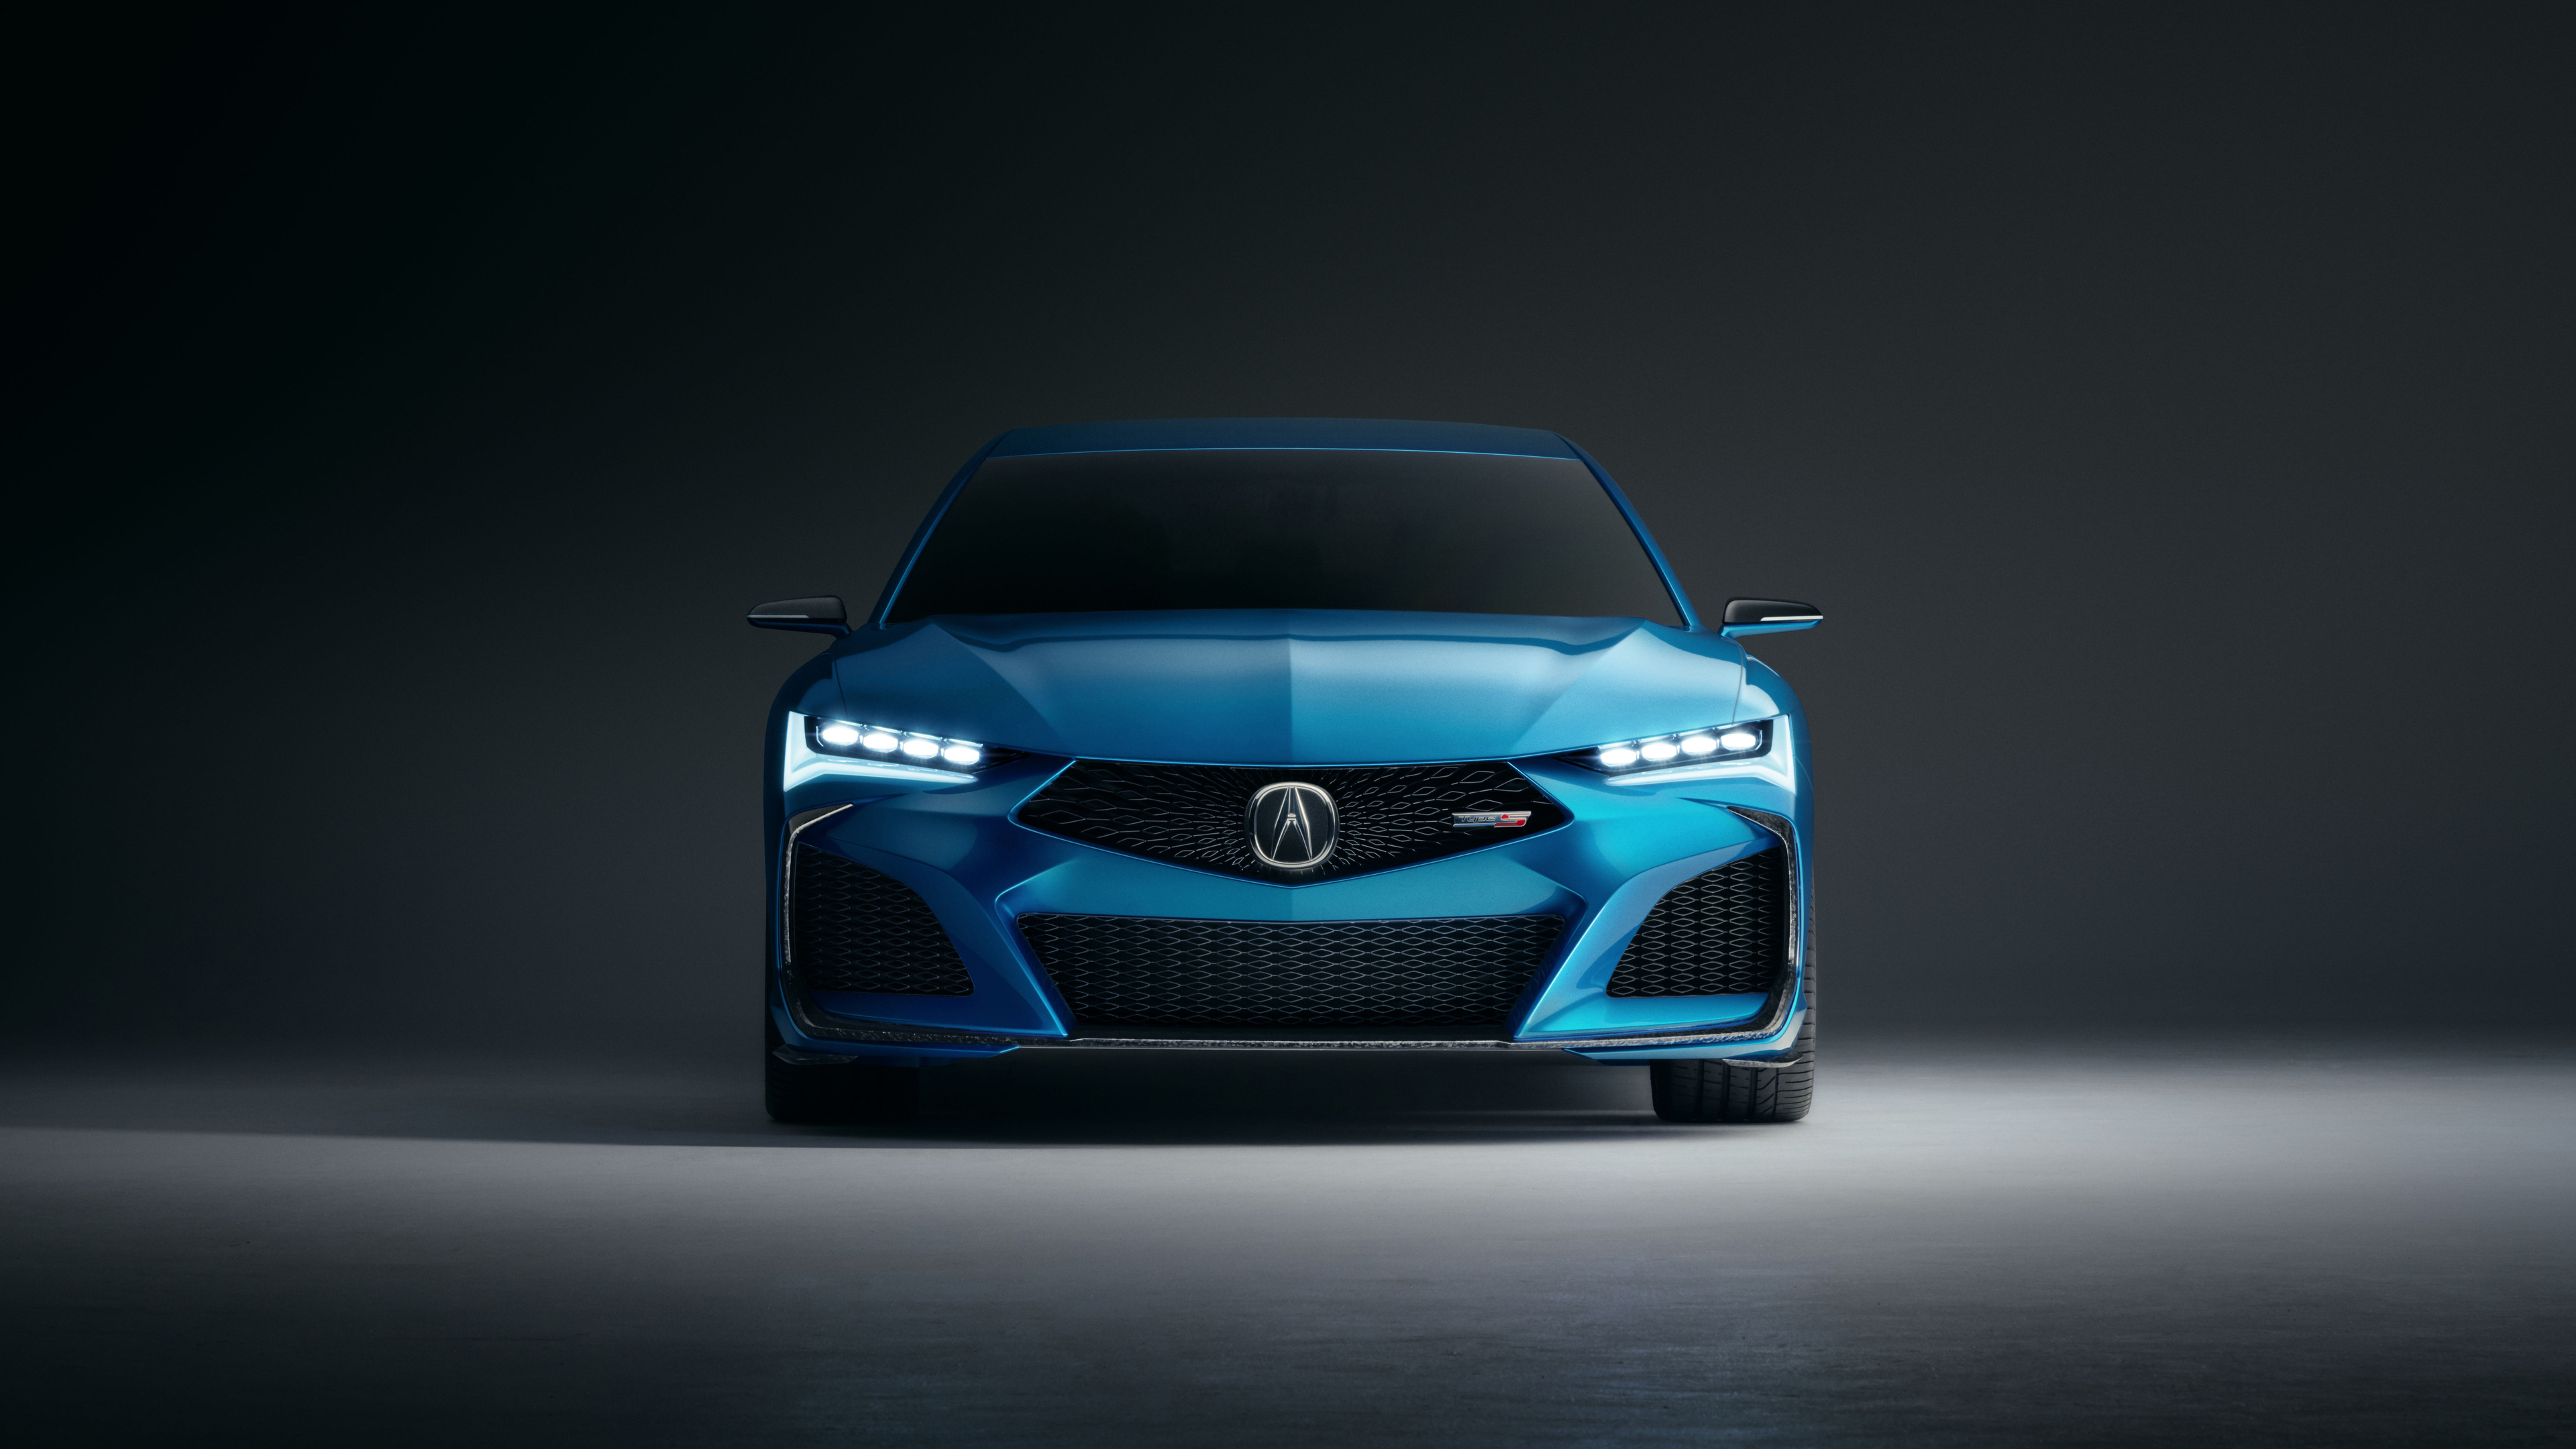 acura type s concept 2019 1569188837 - Acura Type S Concept 2019 - hd-wallpapers, concept wallpapers, cars wallpapers, acura wallpapers, acura type s wallpapers, 8k wallpapers, 5k wallpapers, 4k-wallpapers, 2019 cars wallpapers, 10k wallpapers